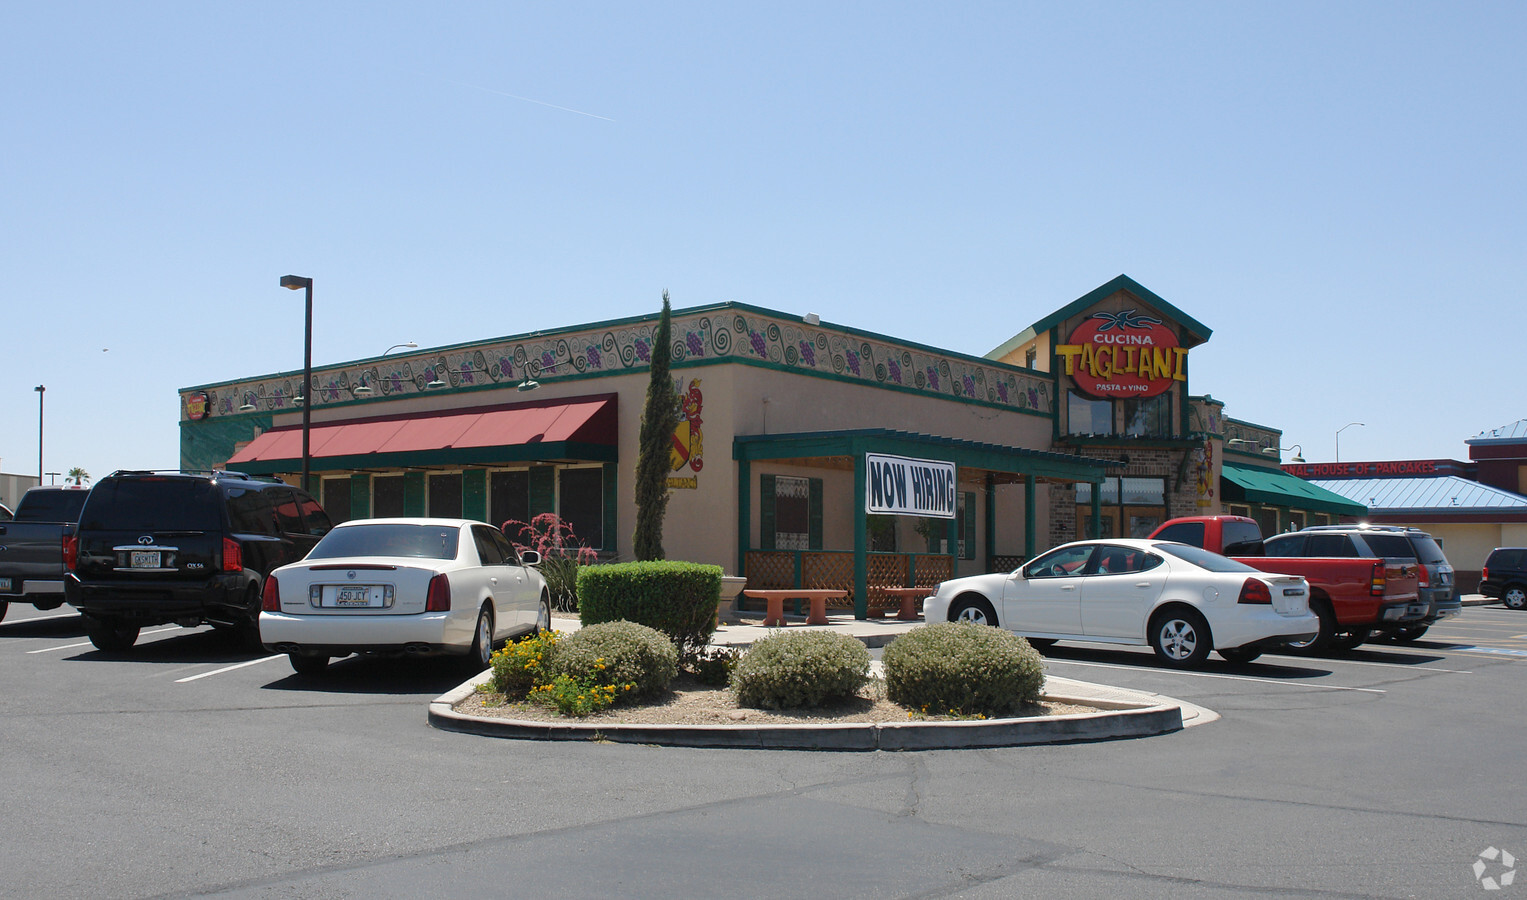 Cucina Tagliani 59th Bell 8349 W Bell Rd Peoria Az 85382 Restaurant Property For Lease